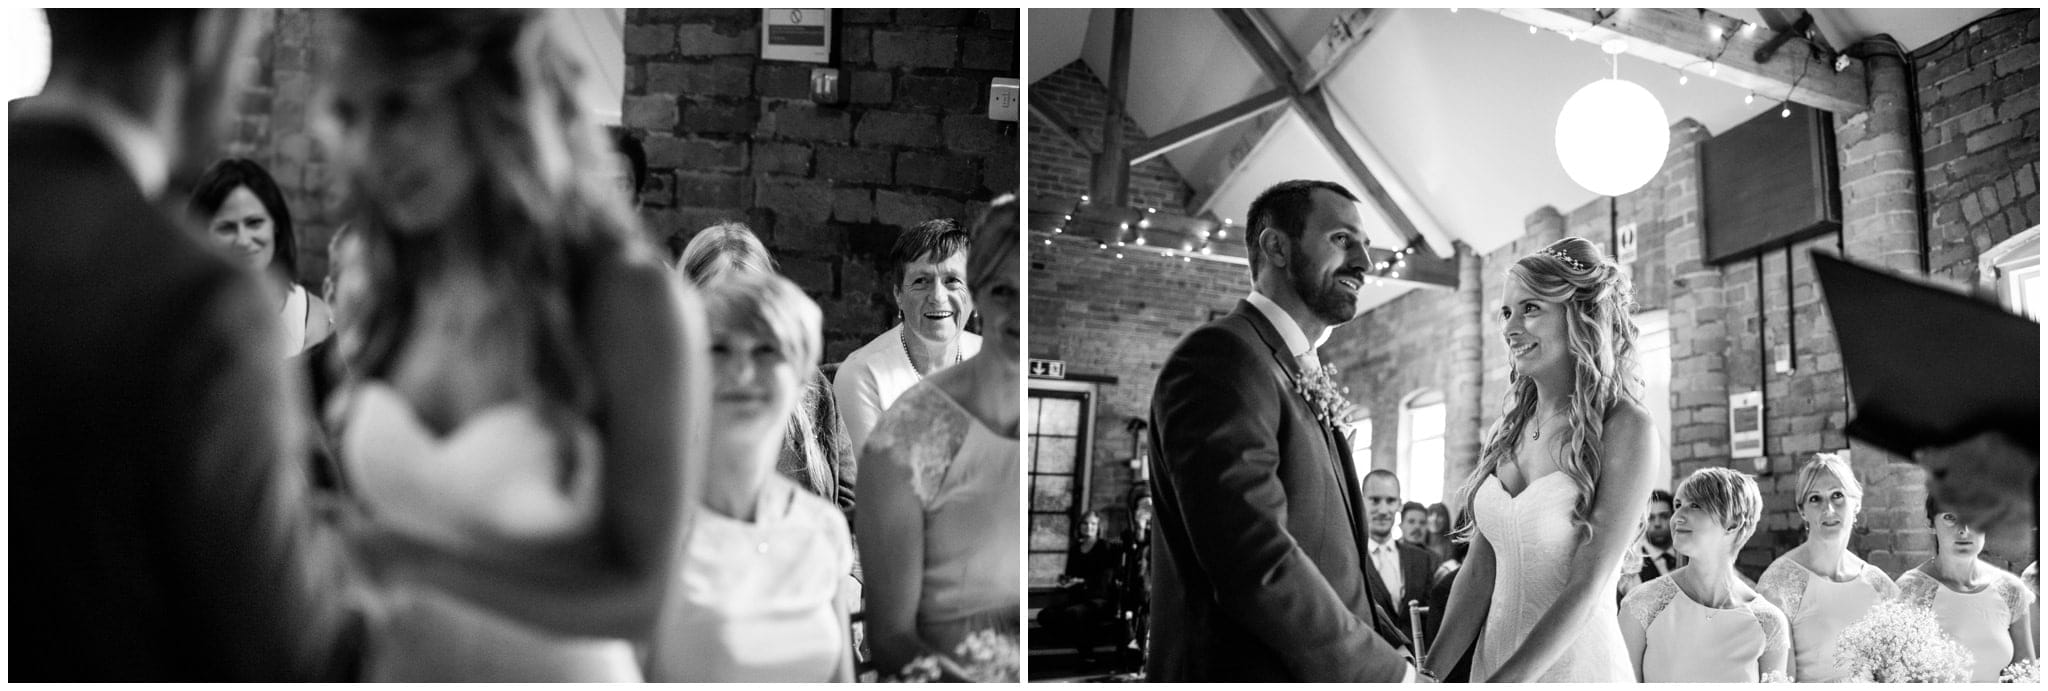 044-leicestershire-wedding-photography